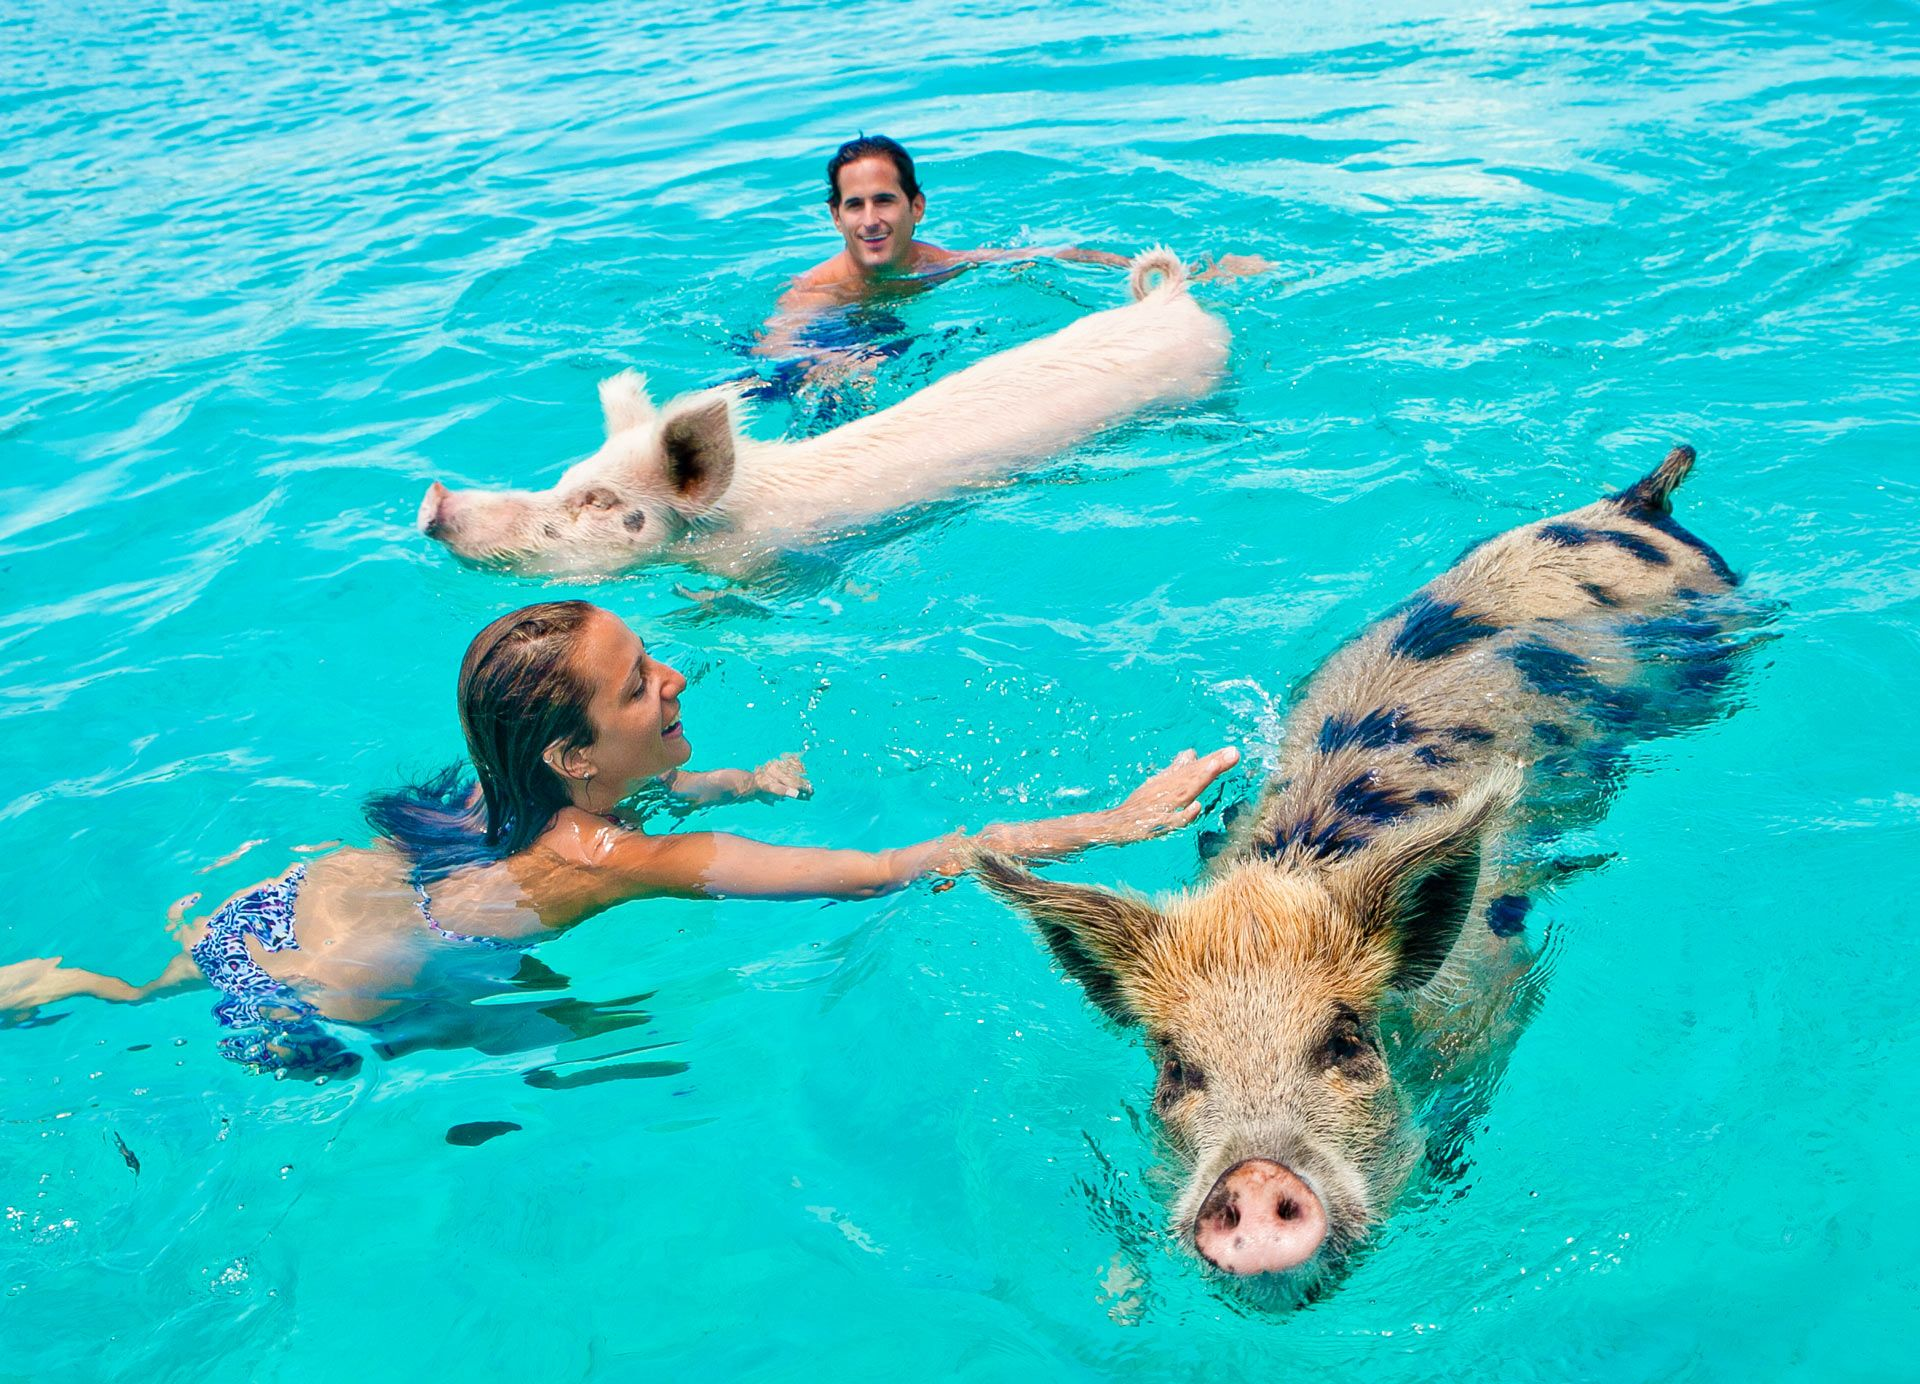 Petting the swimming pigs